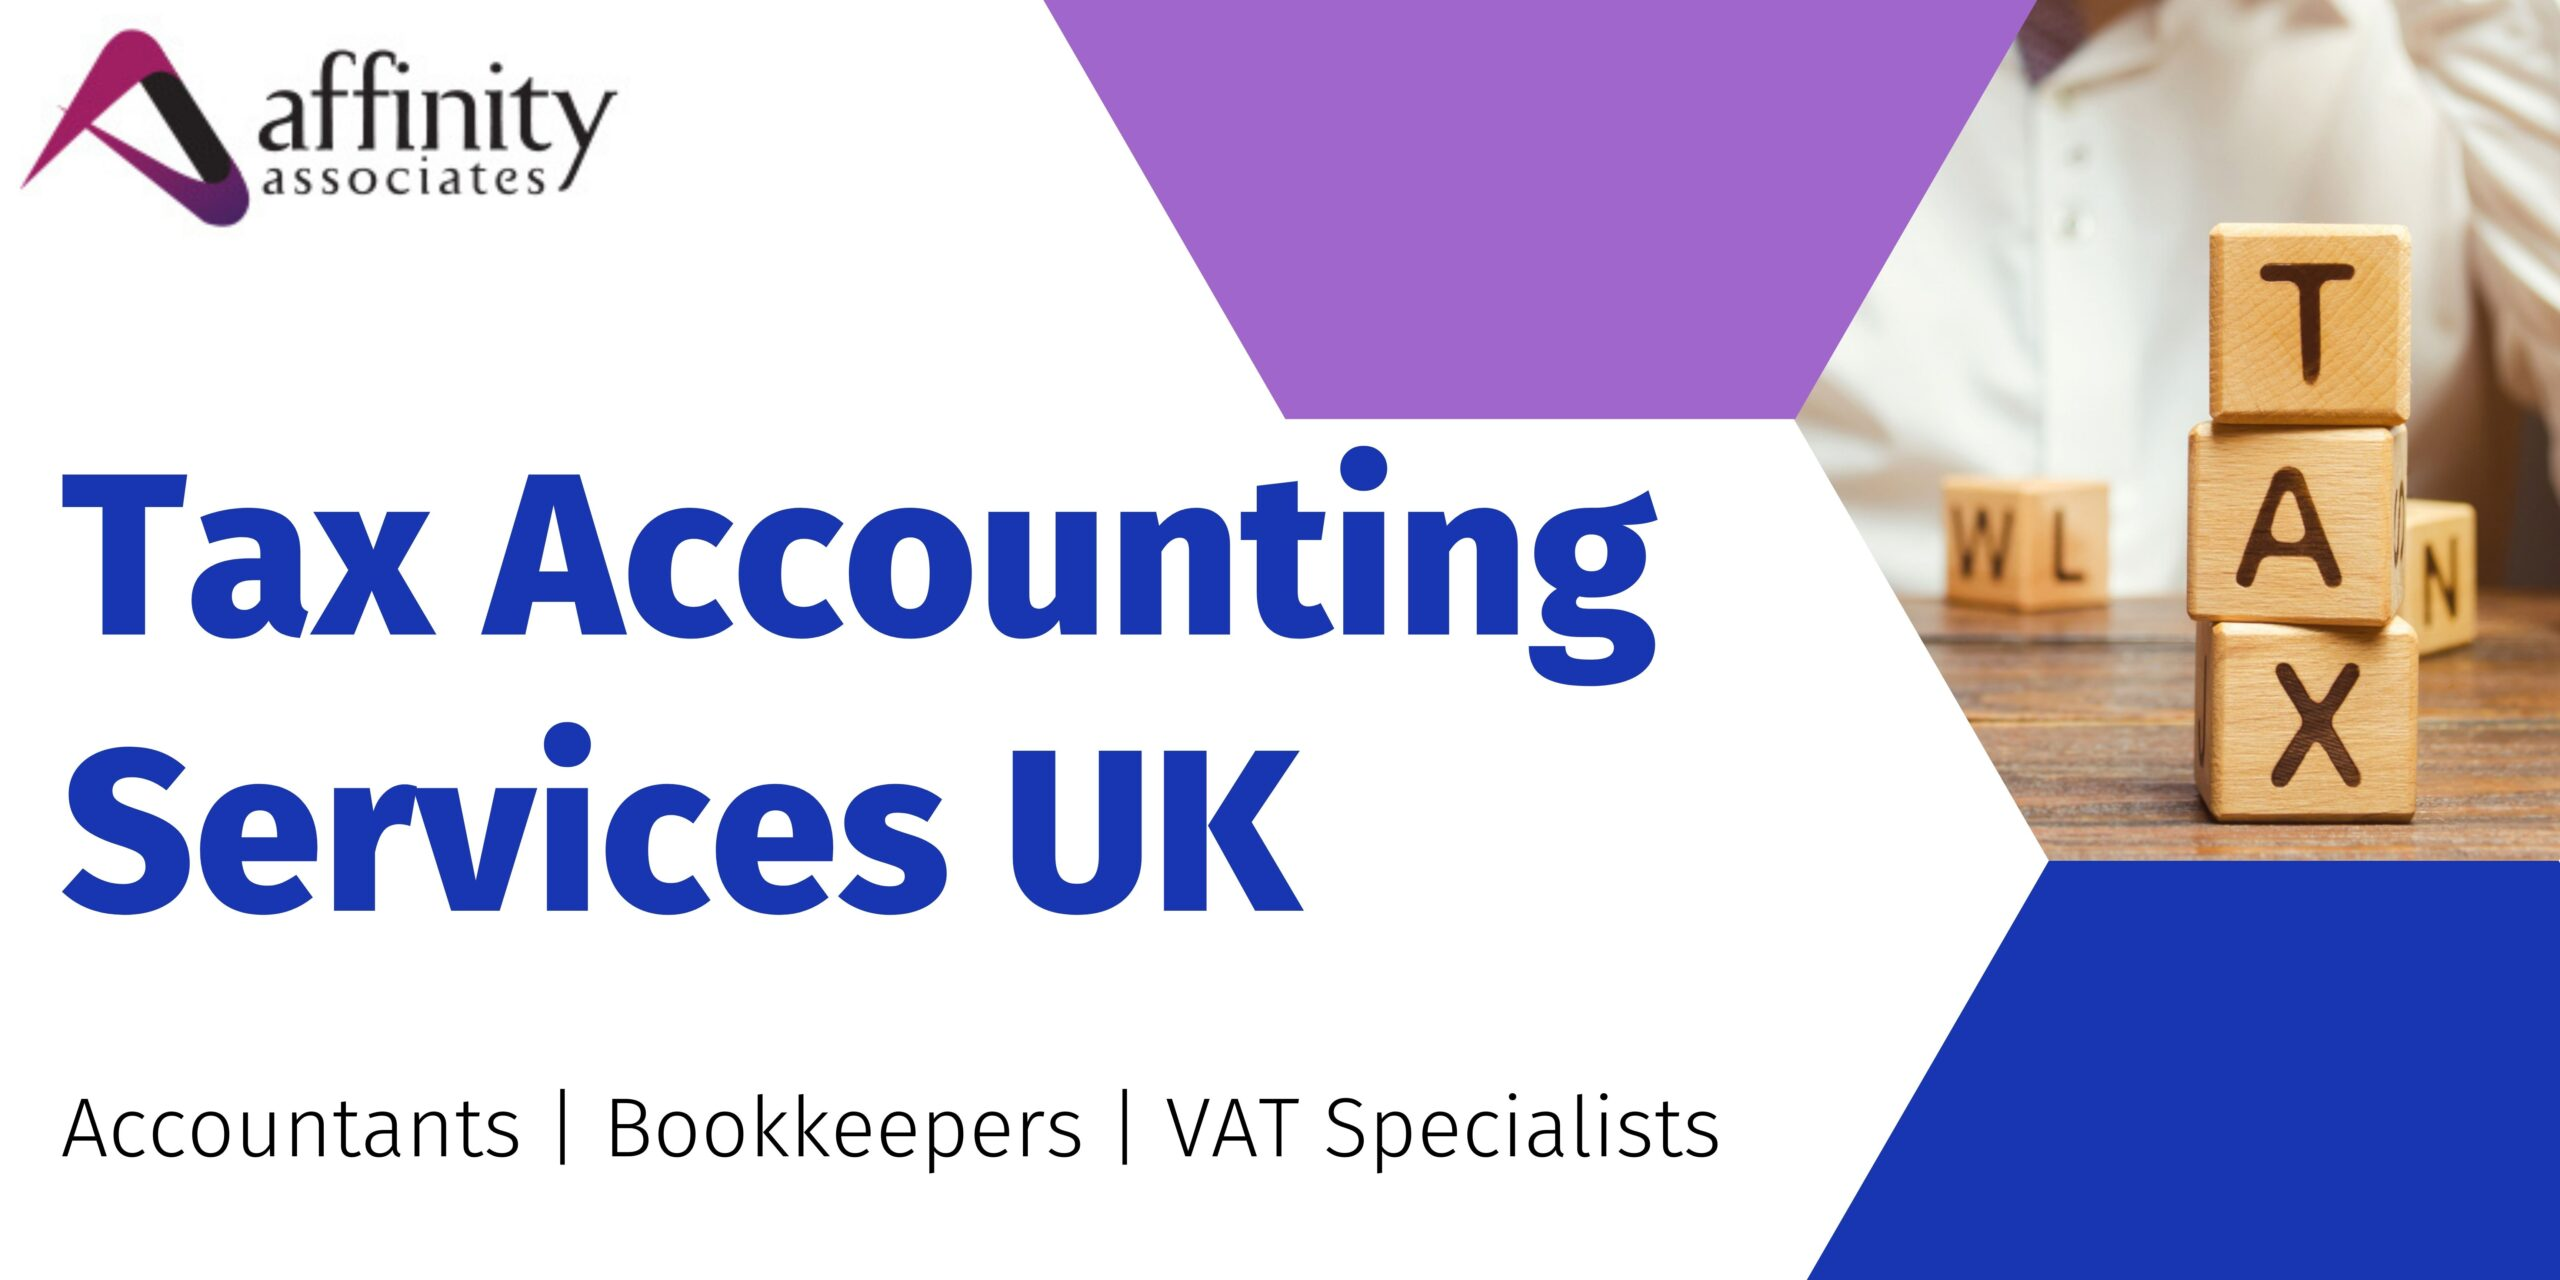 Tax Accounting Services UK – Handpick Your Team of Tax Accounting Experts in the UK